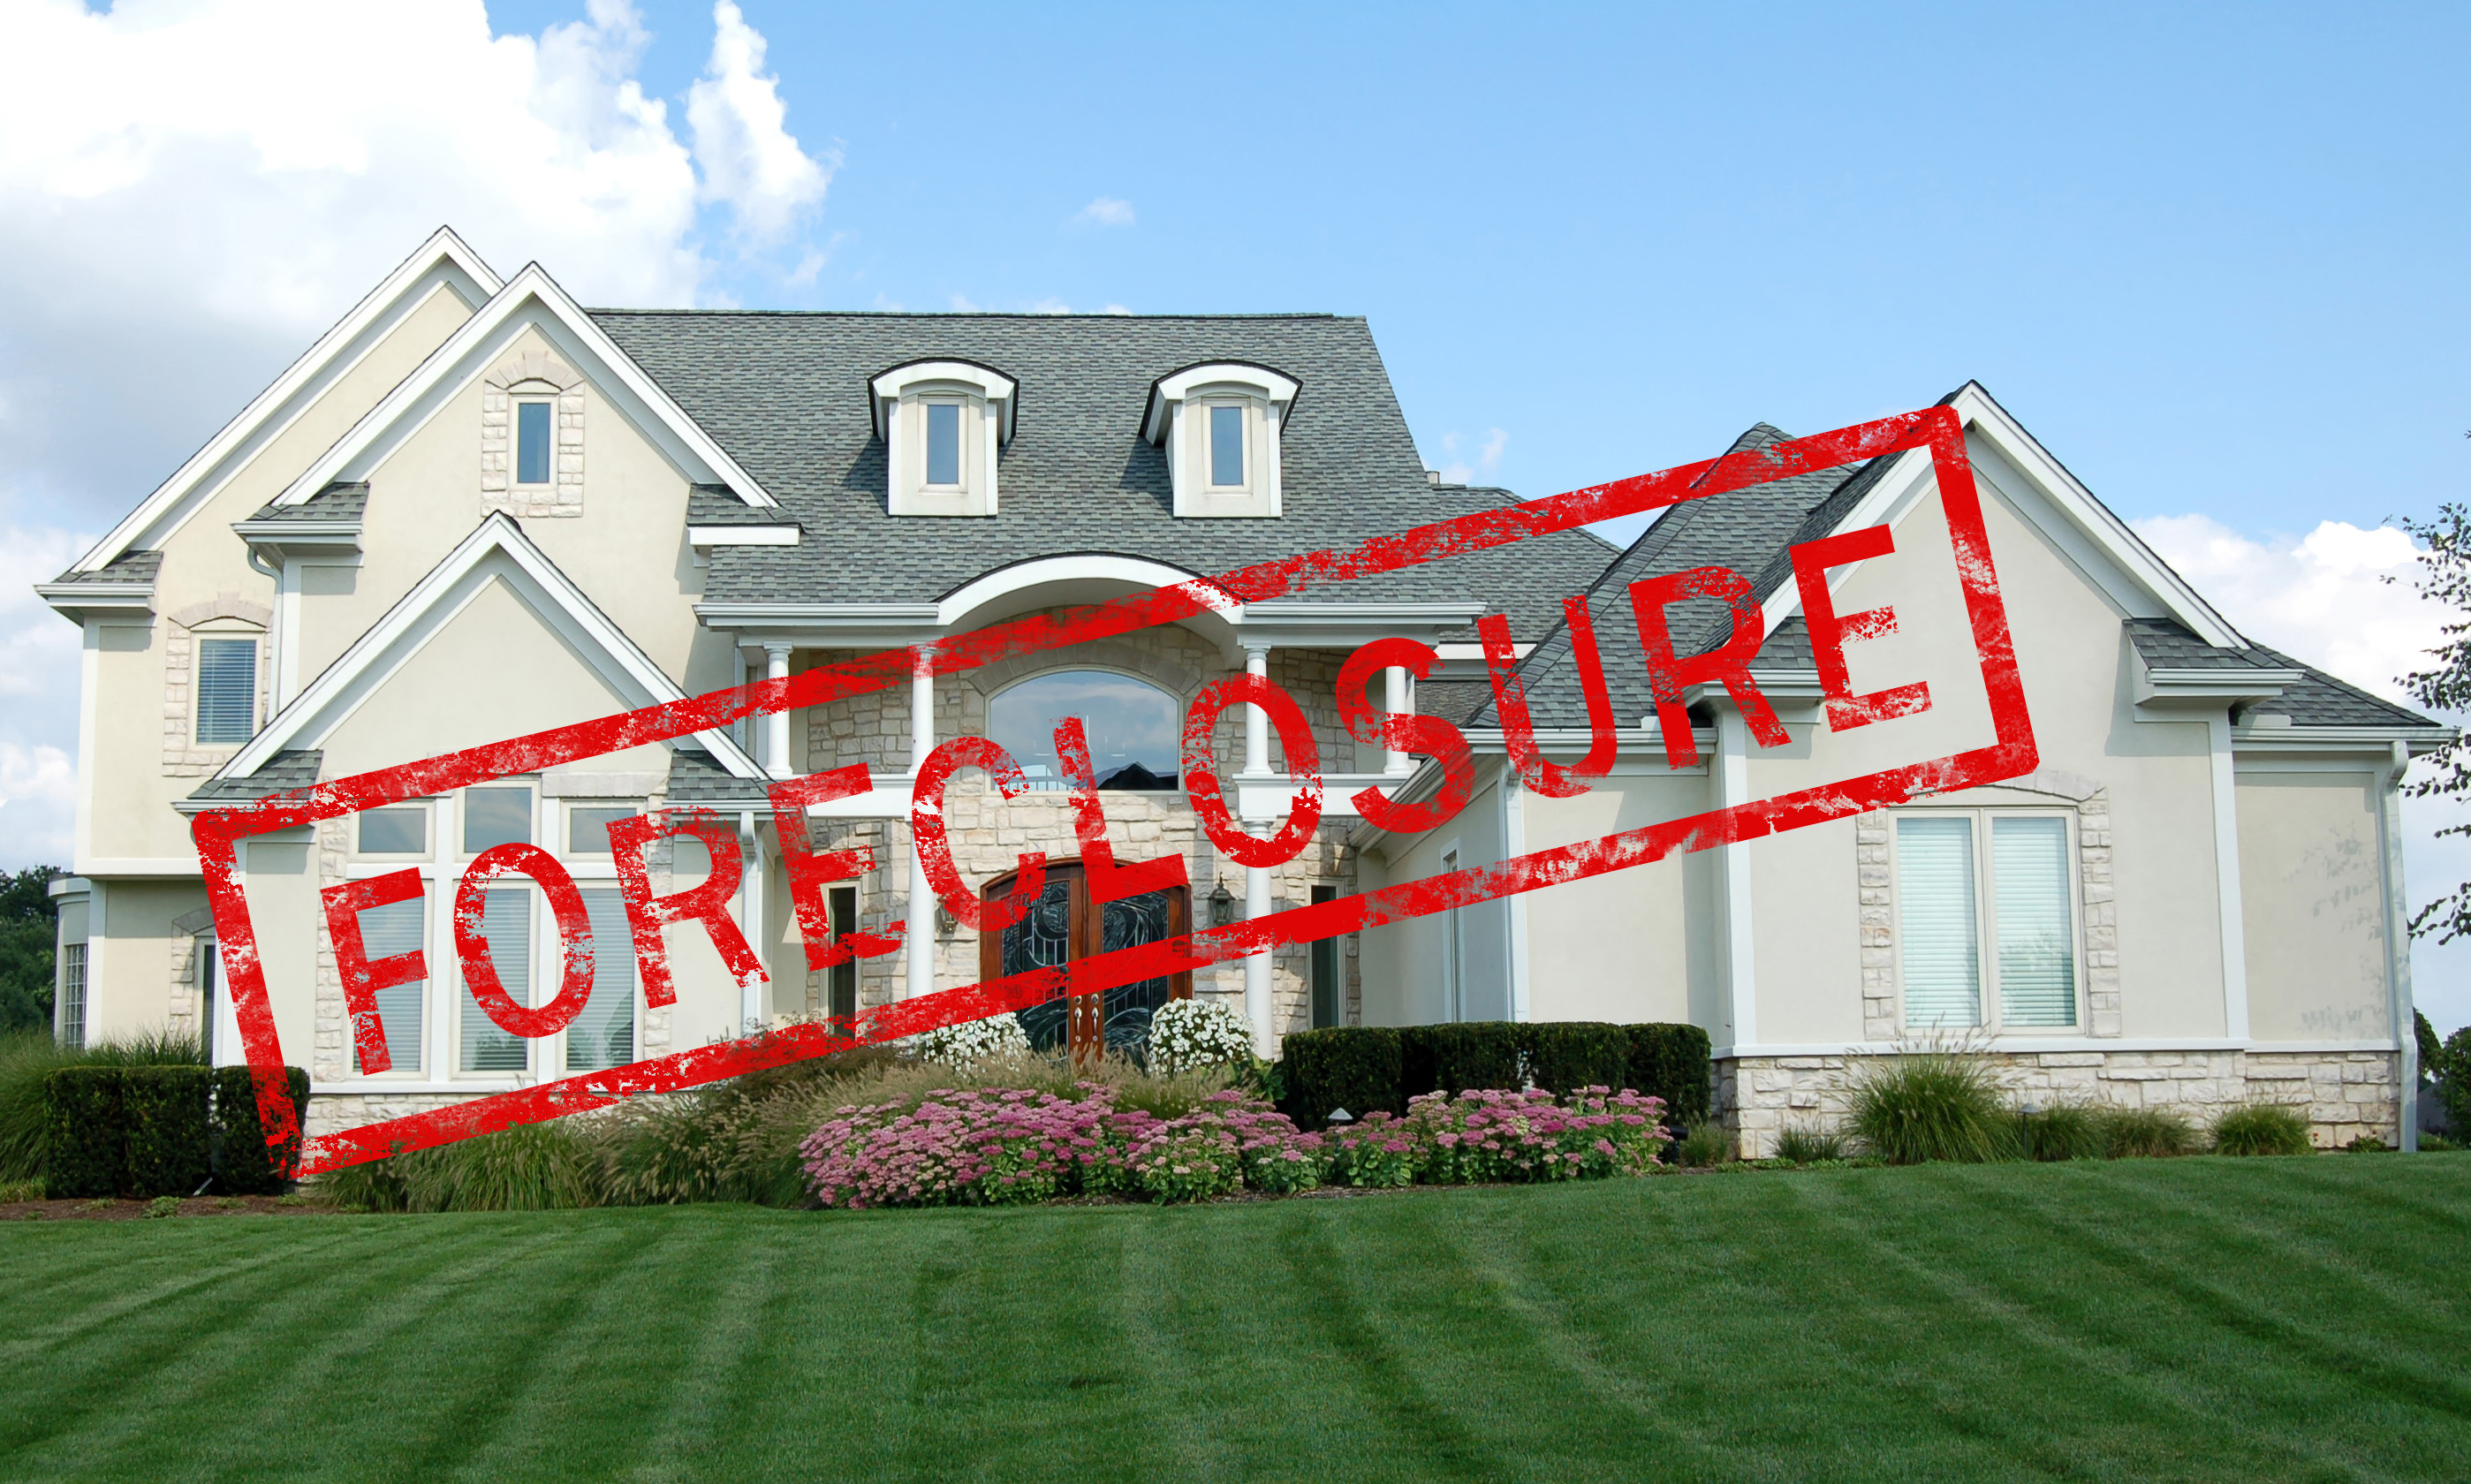 Call Absolute Appraisals, LLC to discuss appraisals regarding Charlottesville City foreclosures